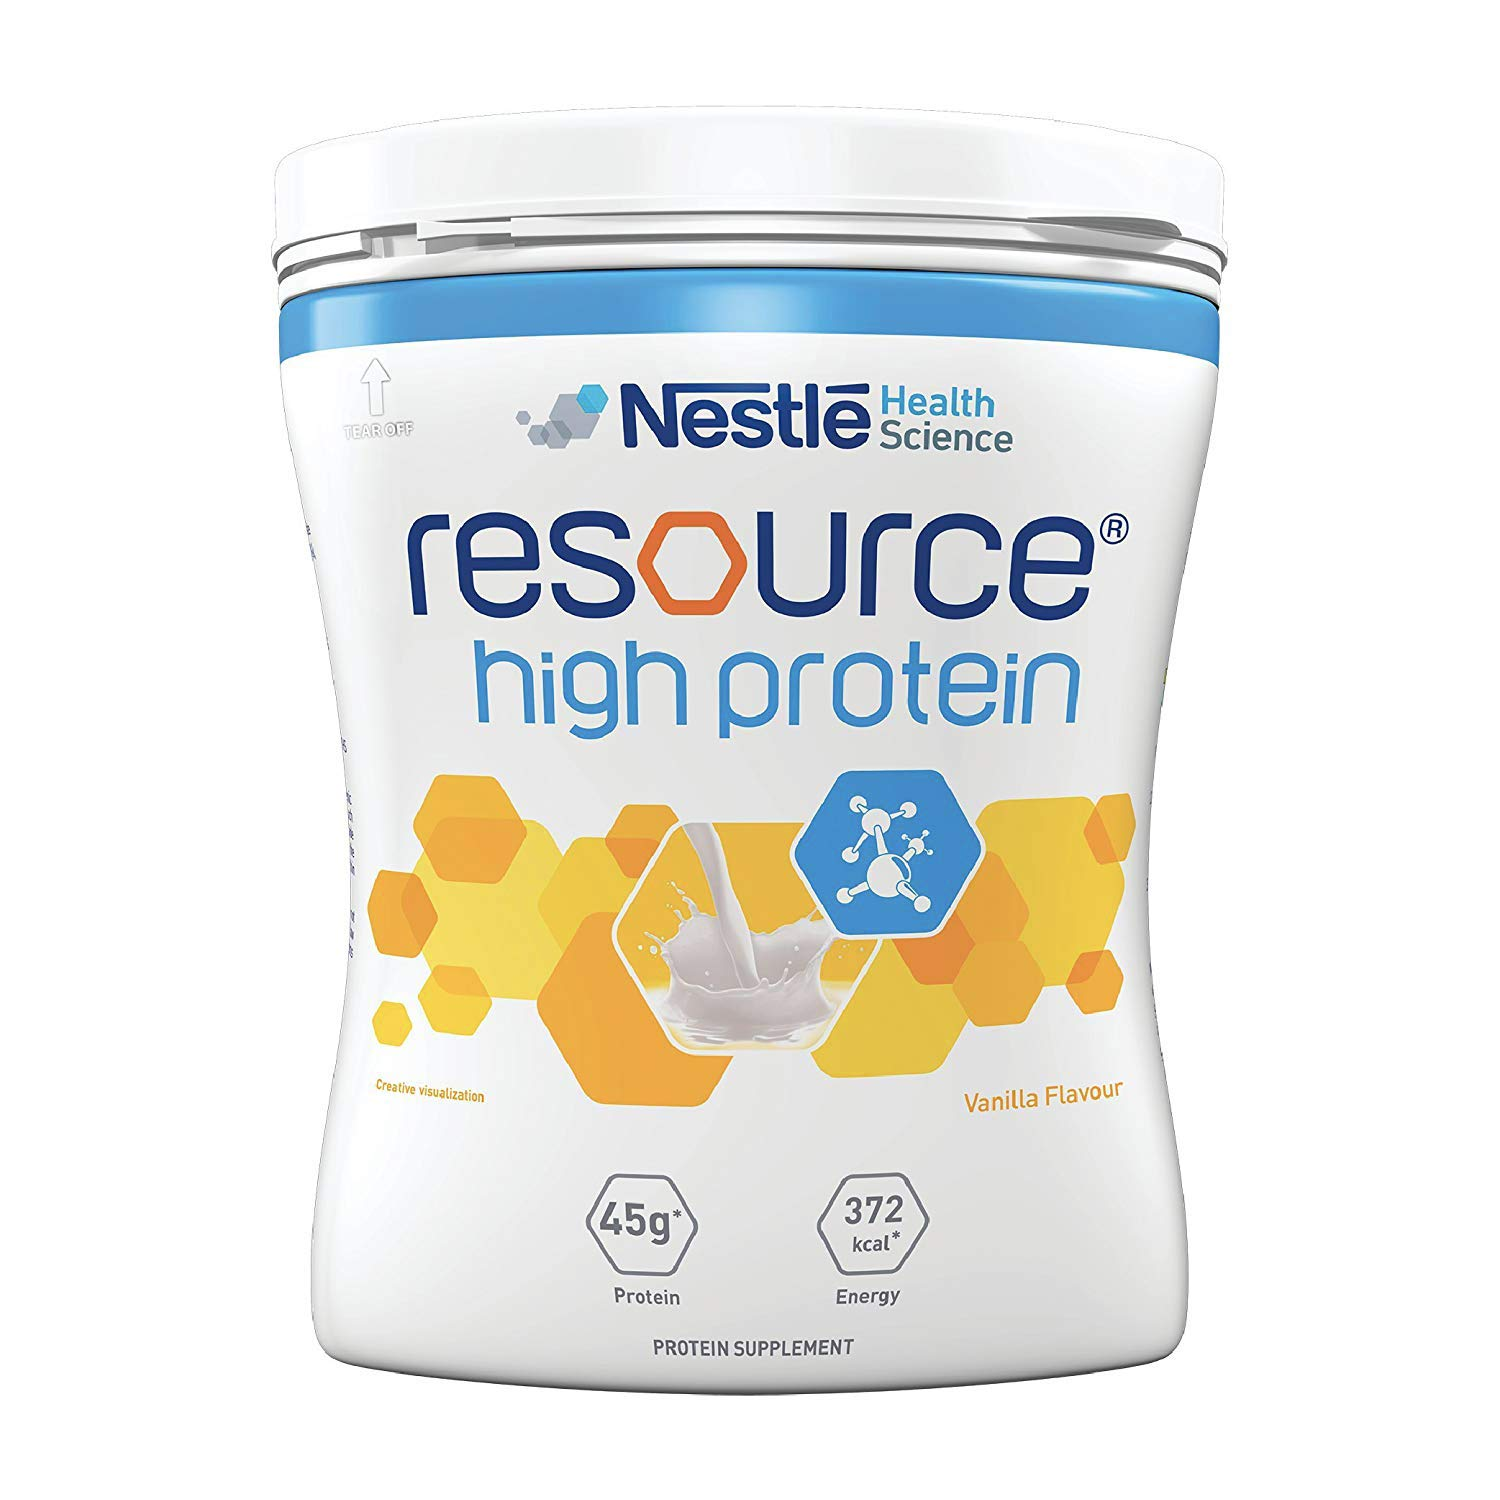 Nestle Resource High Protein - 400g Pet Jar Pack (Vanilla Flavor)